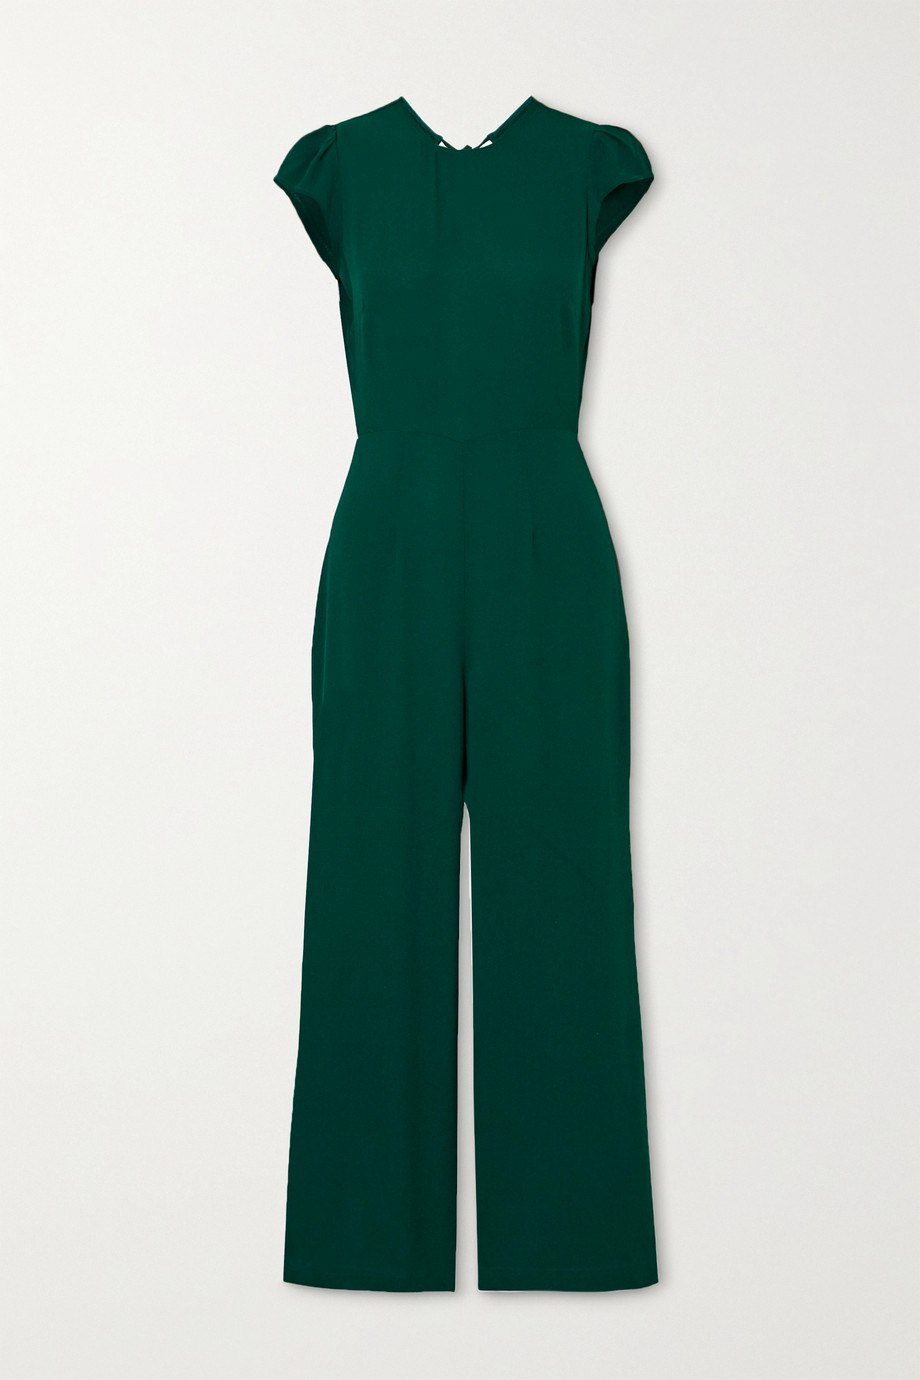 Reformation + NET SUSTAIN Mayer open-back crepe jumpsuit